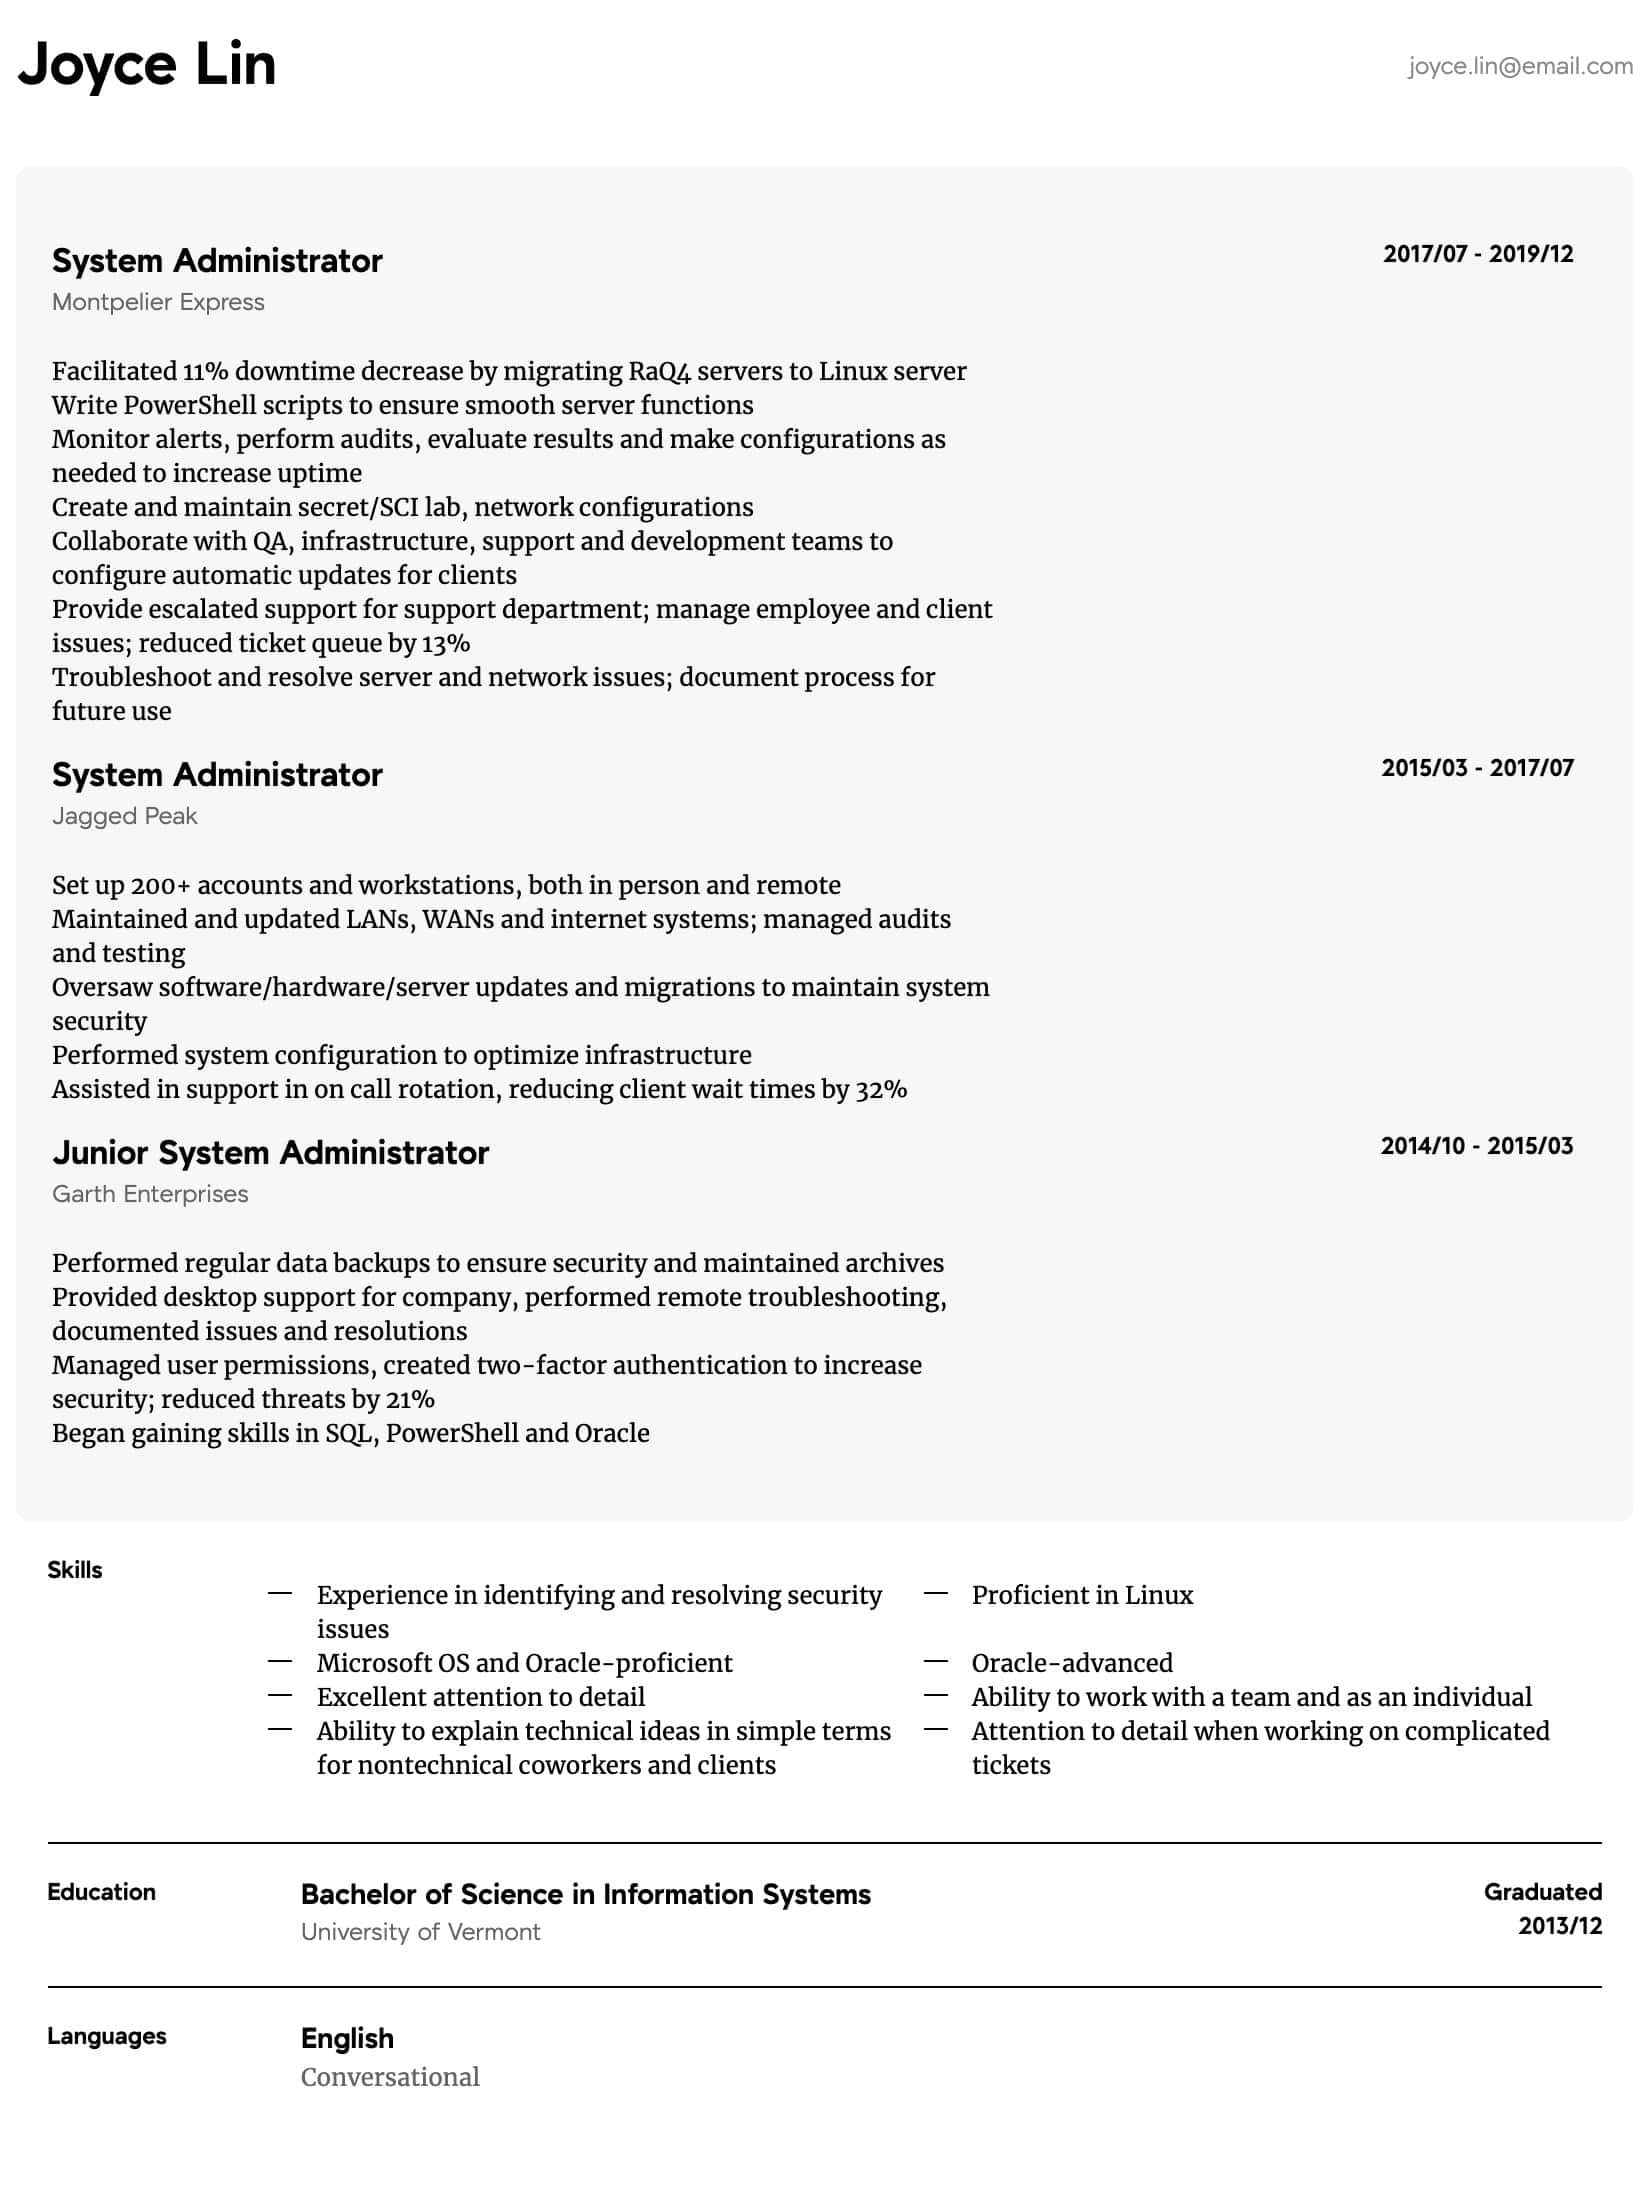 system administrator resume samples all experience levels headline for windows Resume Resume Headline For Windows System Administrator